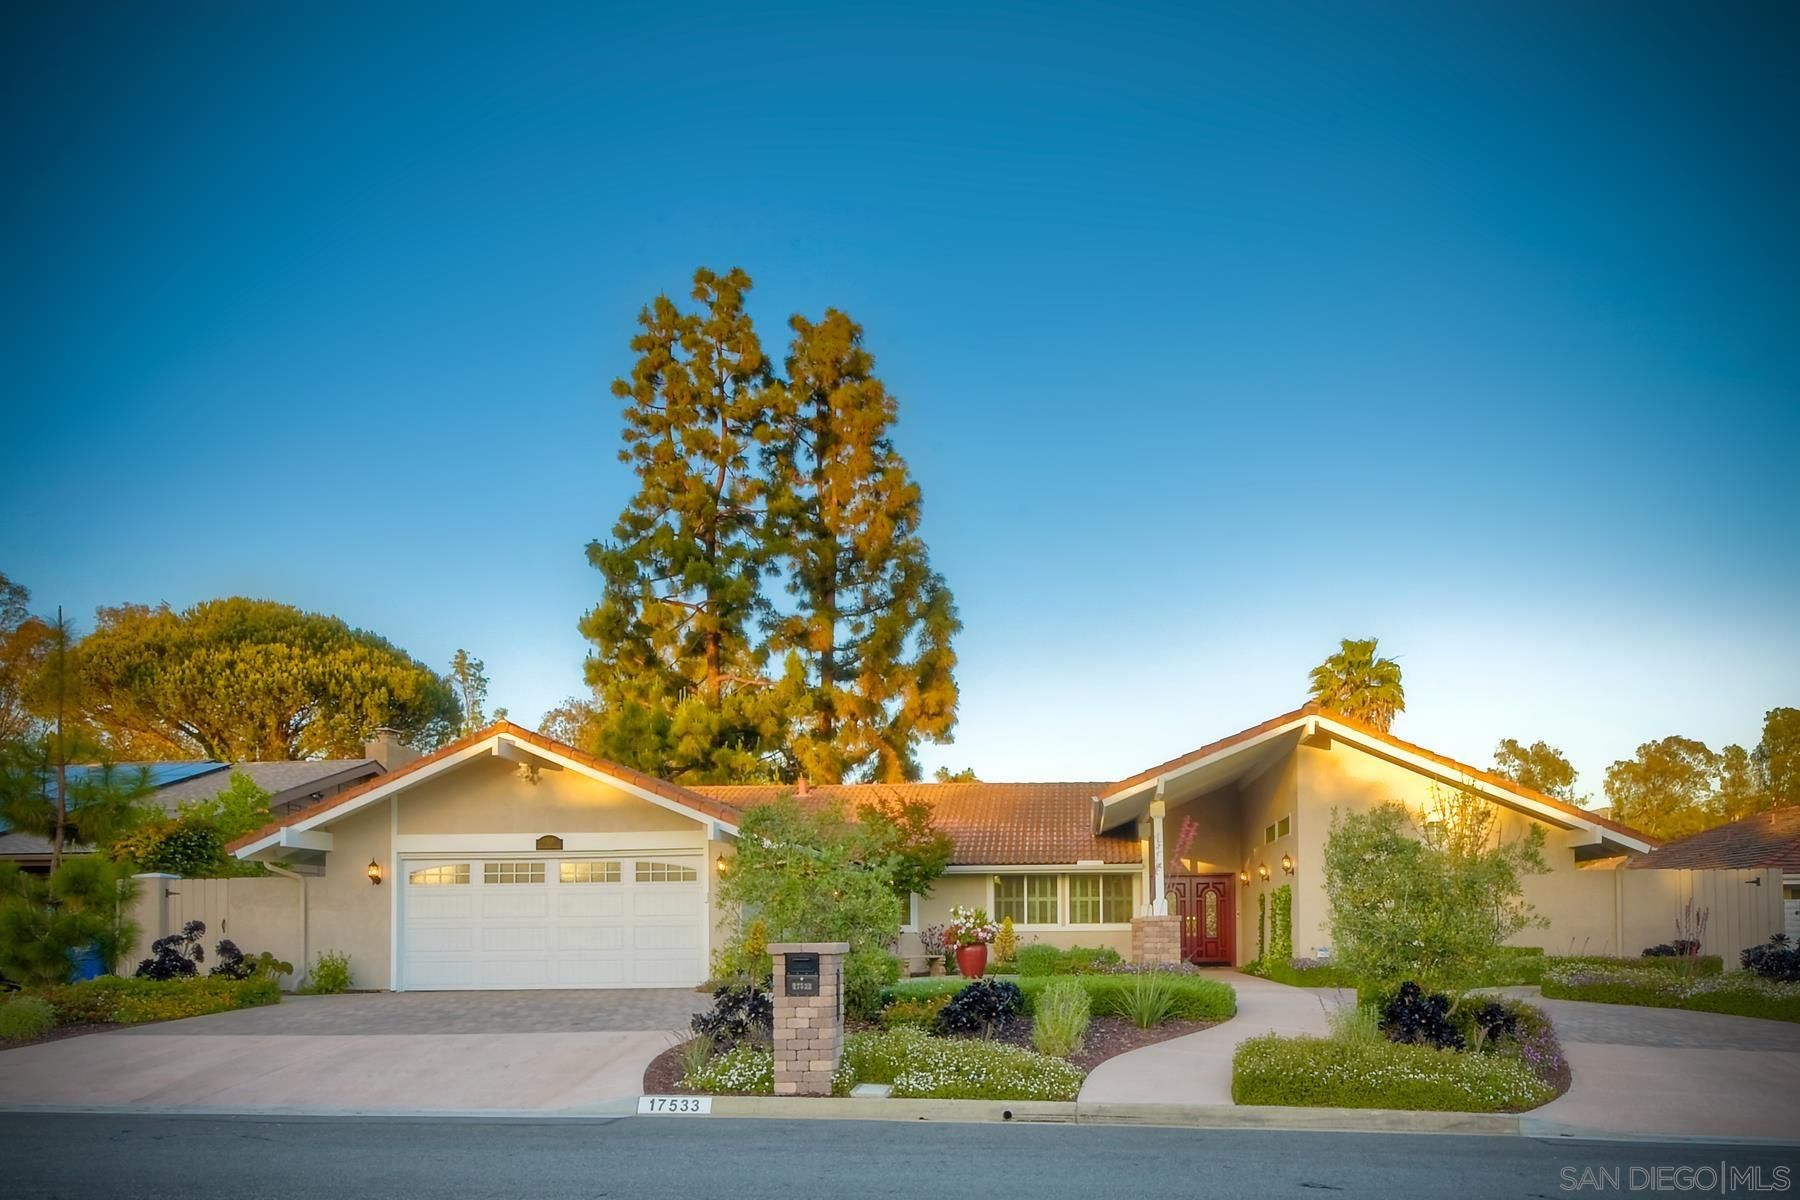 Main Photo: POWAY House for sale : 4 bedrooms : 17533 Saint Andrews Dr.